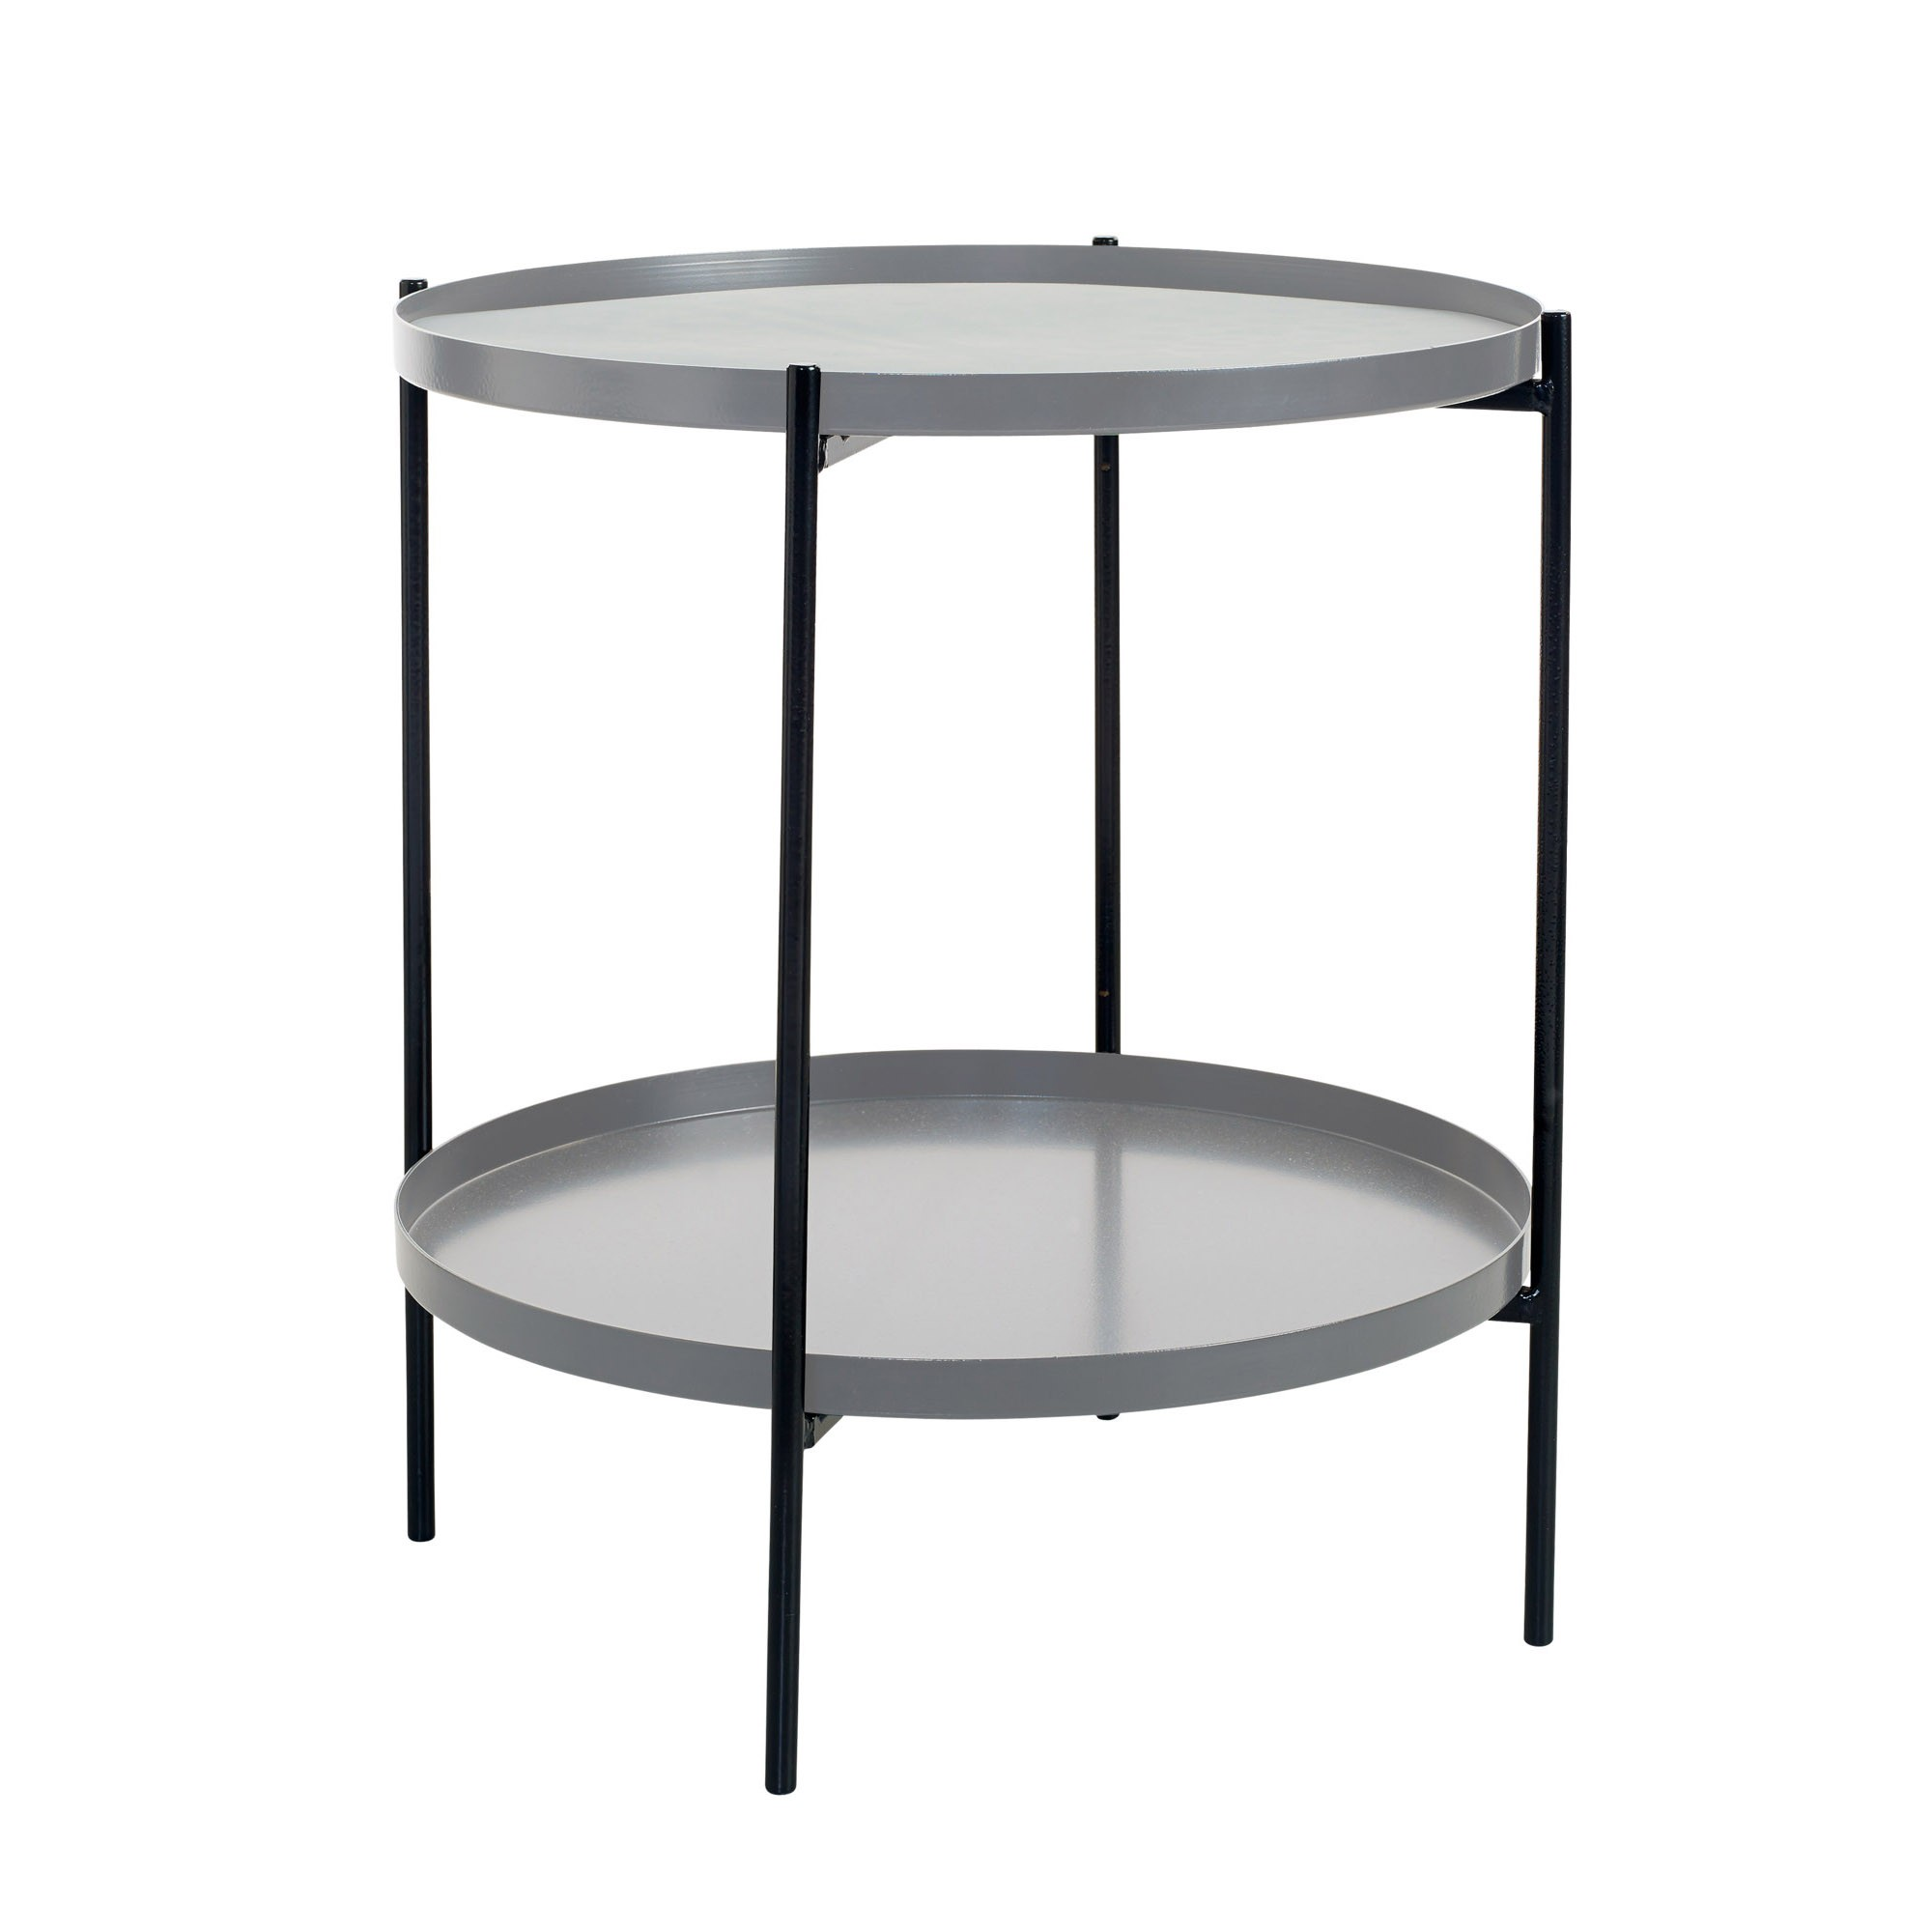 TRAY side table S grey BOLIA